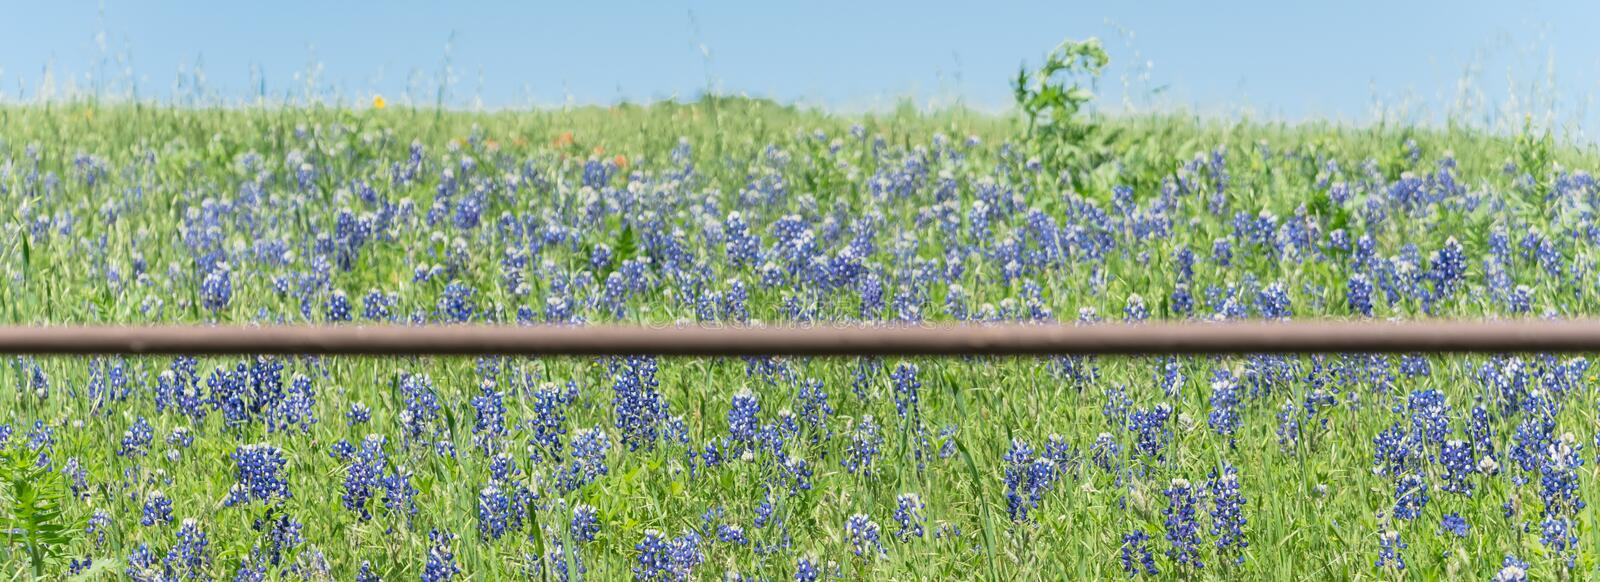 Panoramiczne blossom bluebonnet fields with rustic fence in country place of Texas, America fotografia royalty free